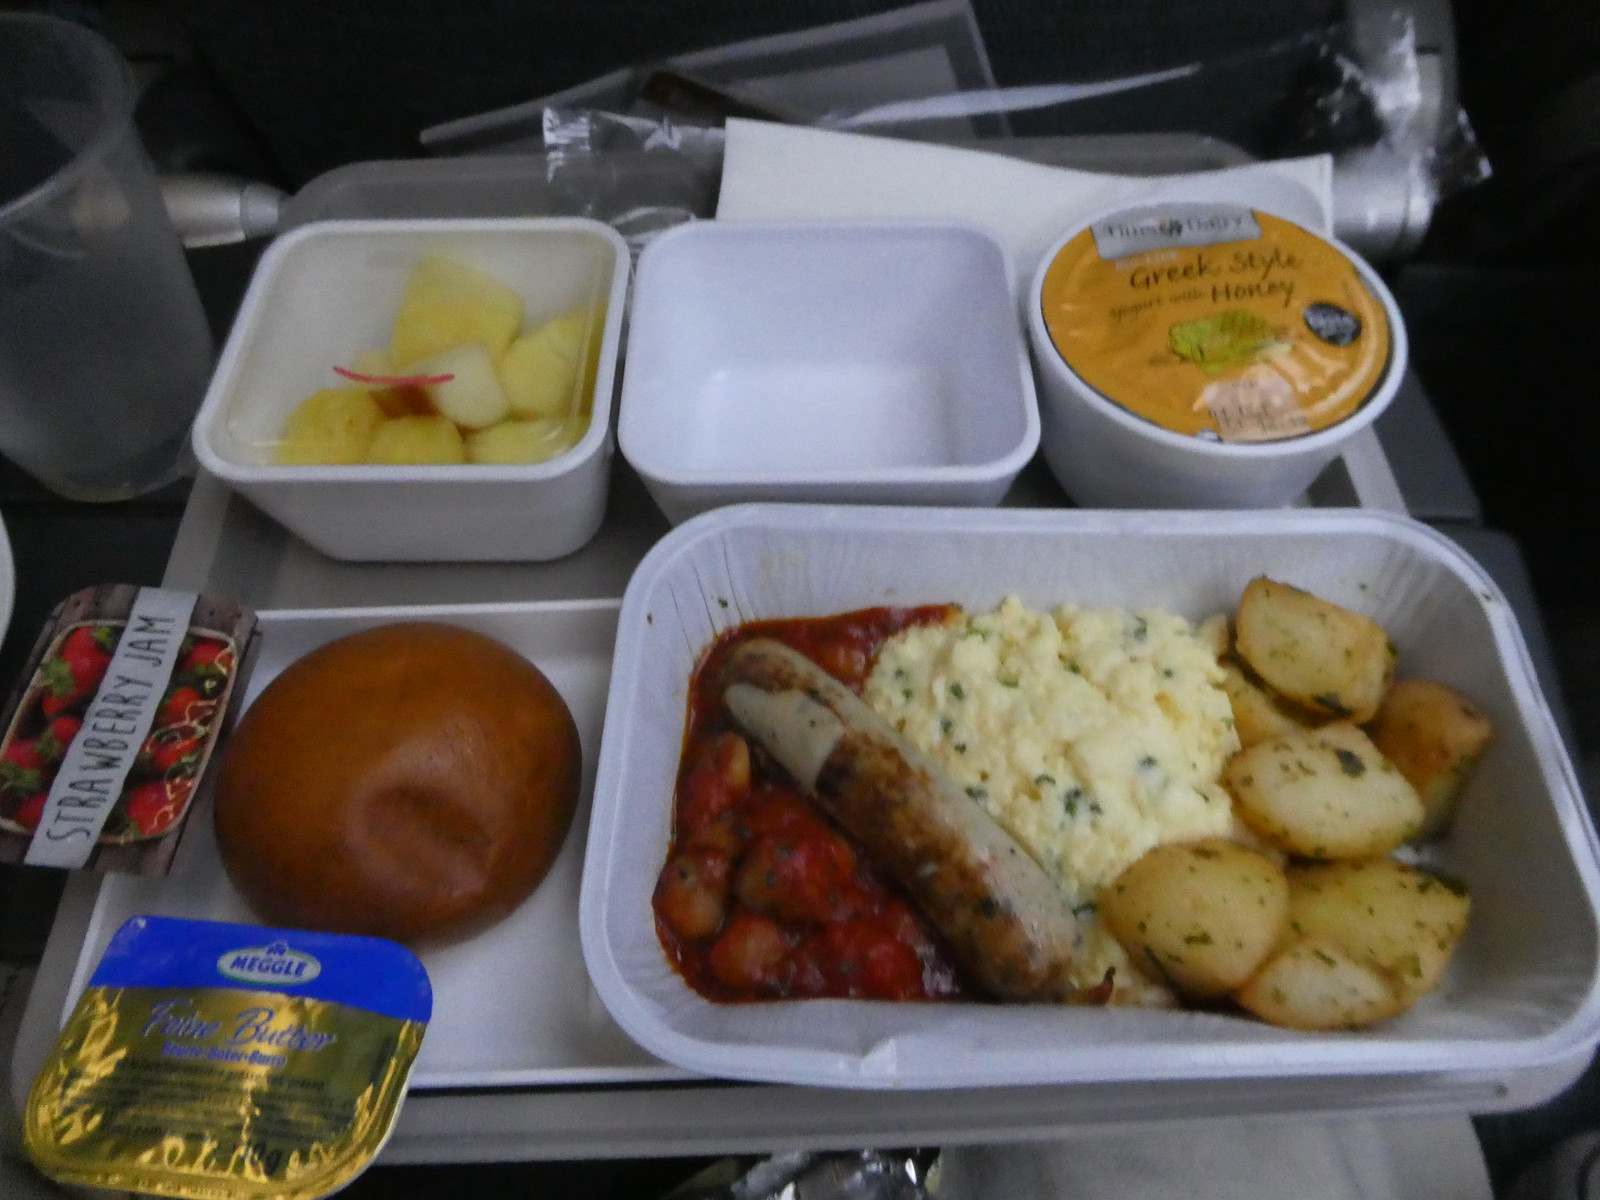 Breakfast served on board our flight from Manchester to Hong Kong